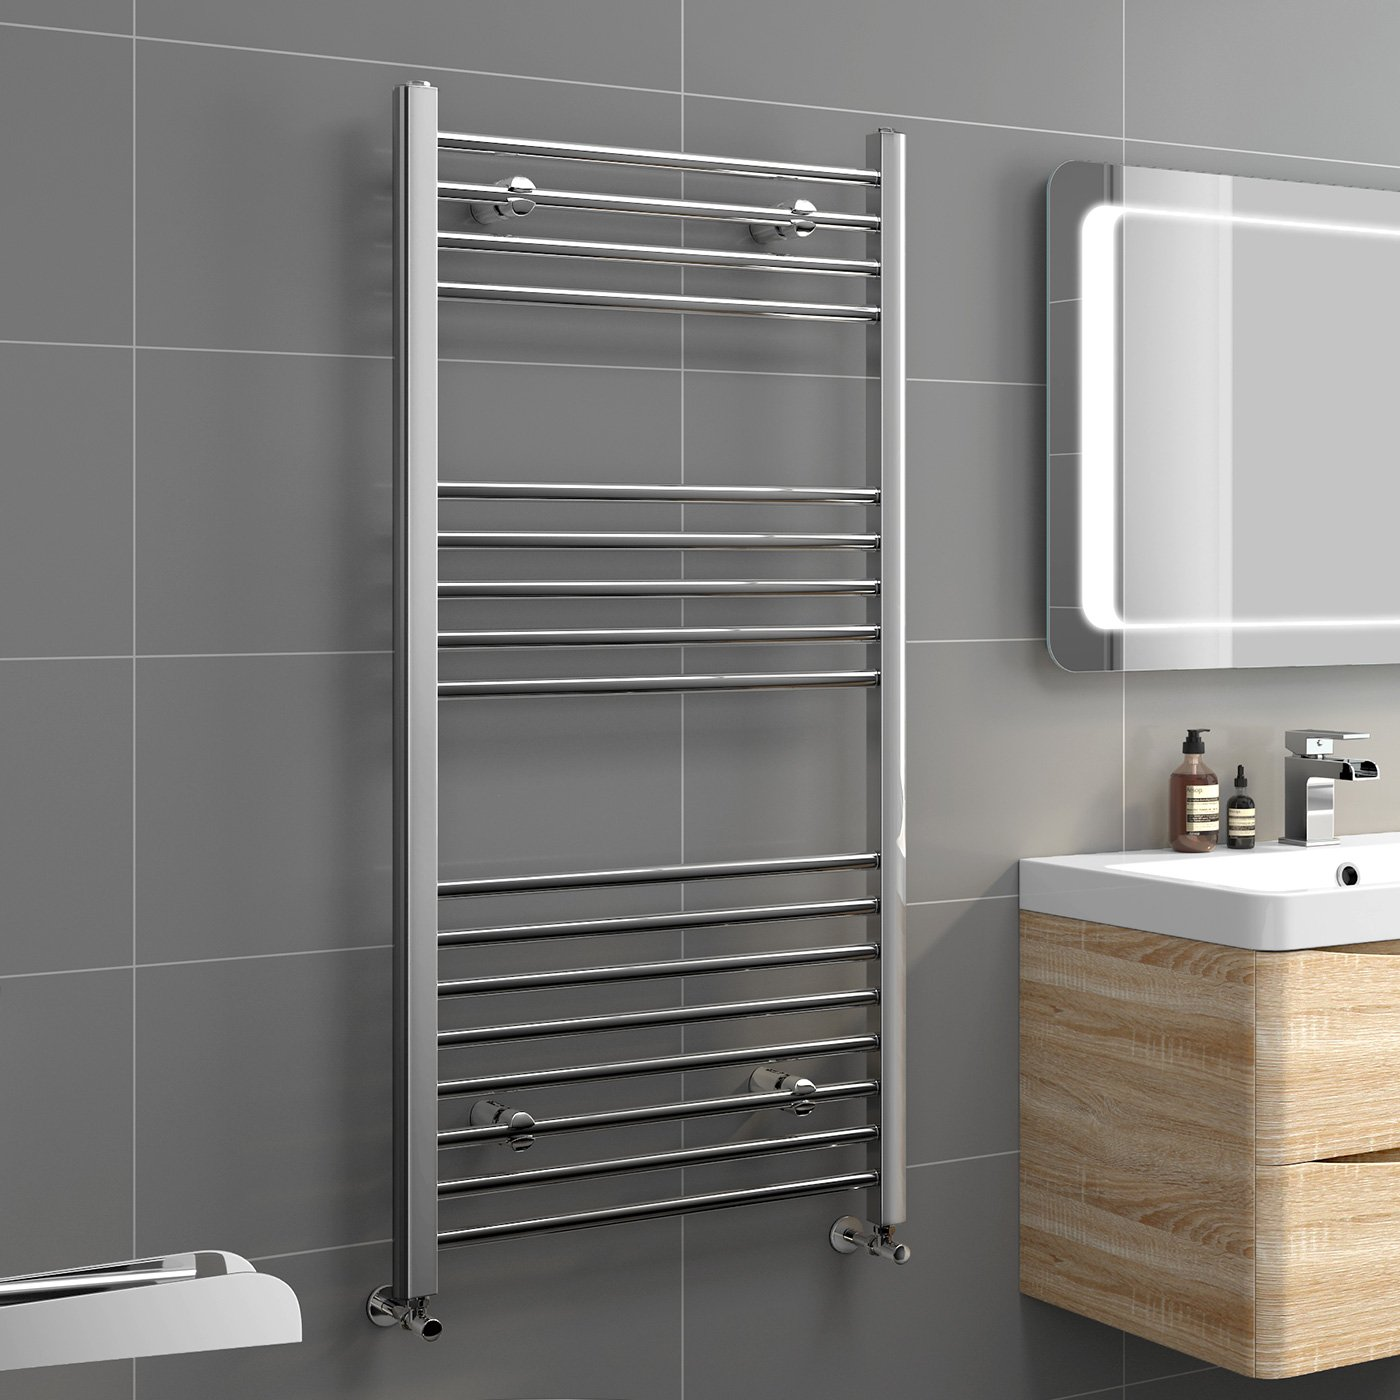 Designer Heated Towel Rails For Bathrooms bedroom design quotes House Designer